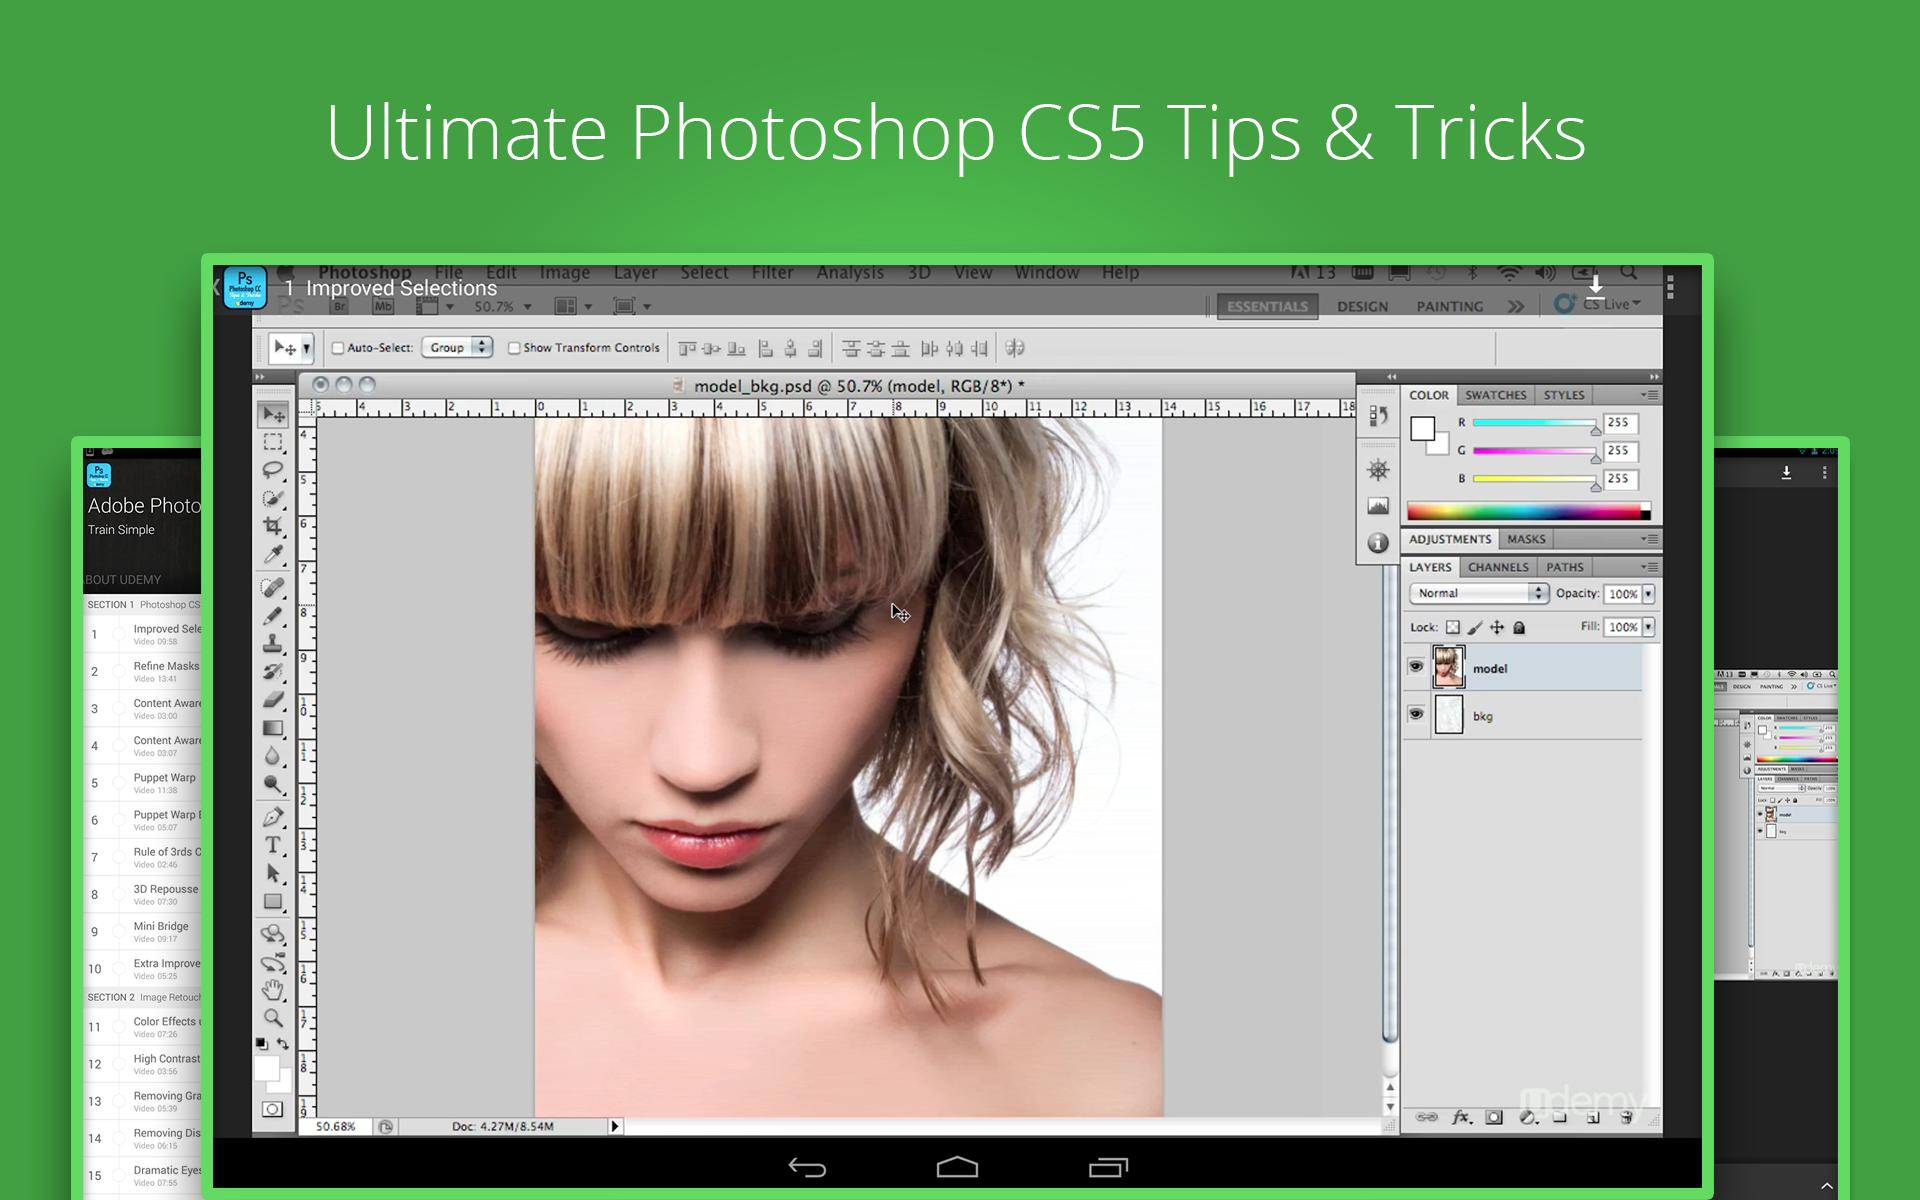 Udemy Photoshop CS5 Tutorials for Android - APK Download